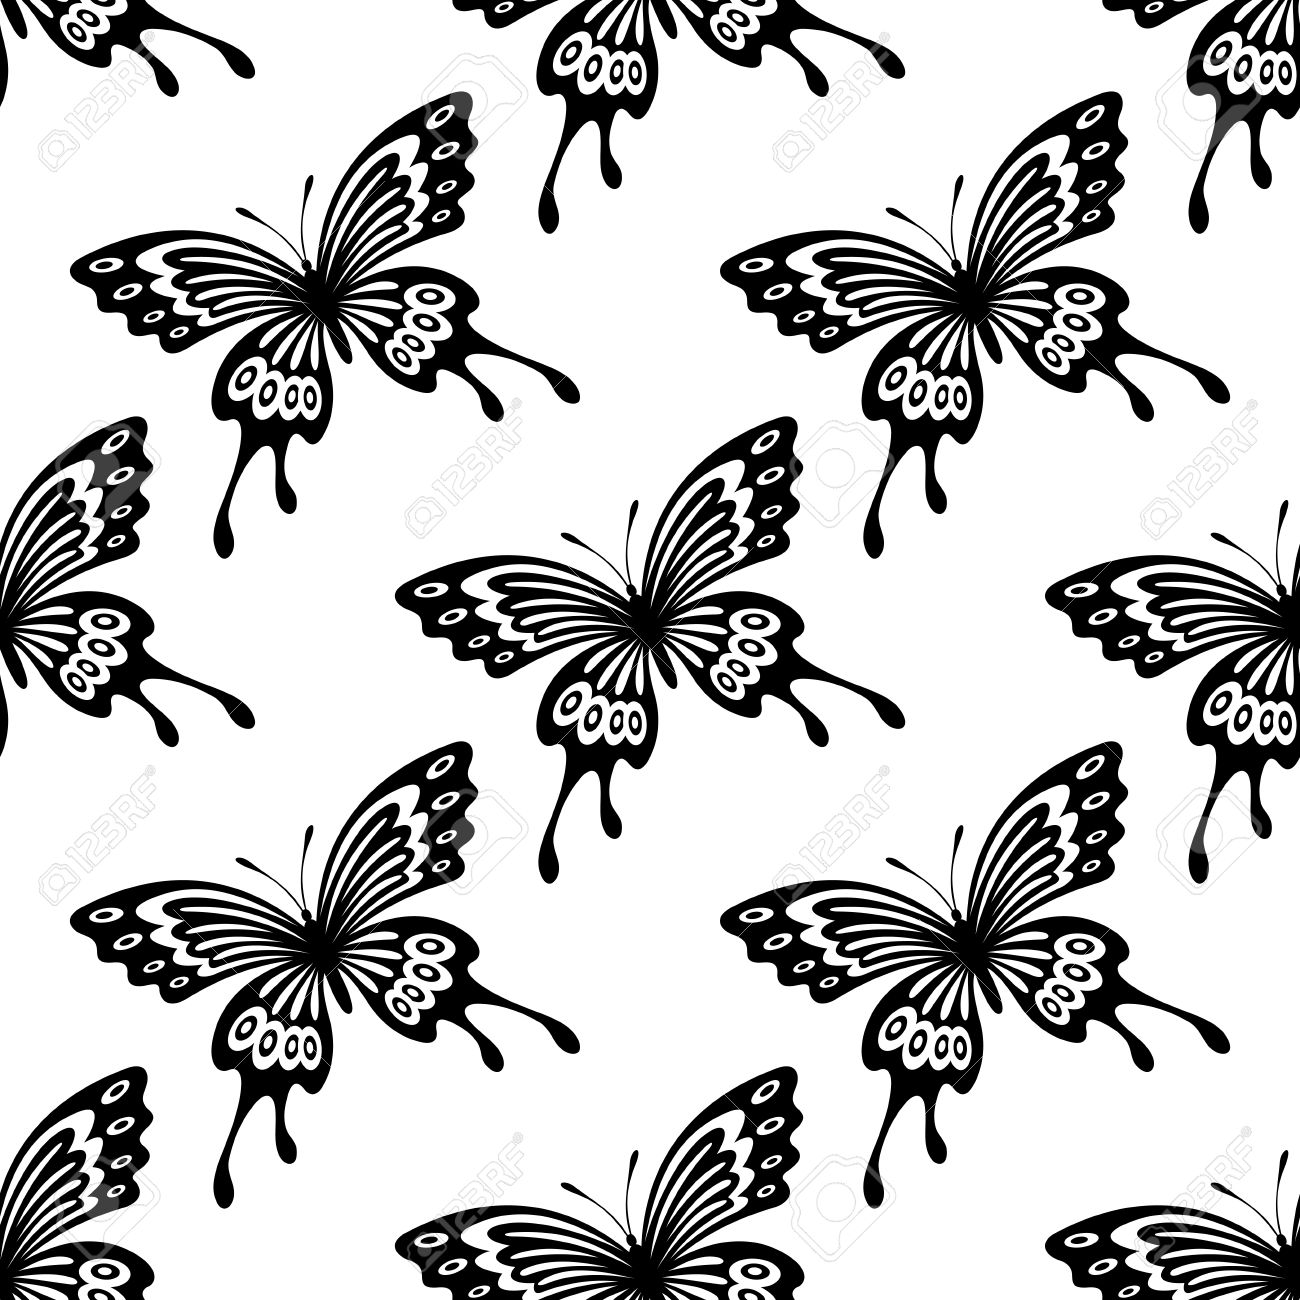 Seamless Background Pattern Of Flying Ornamental Black And White Butterflies In Square Format For Wallpaper